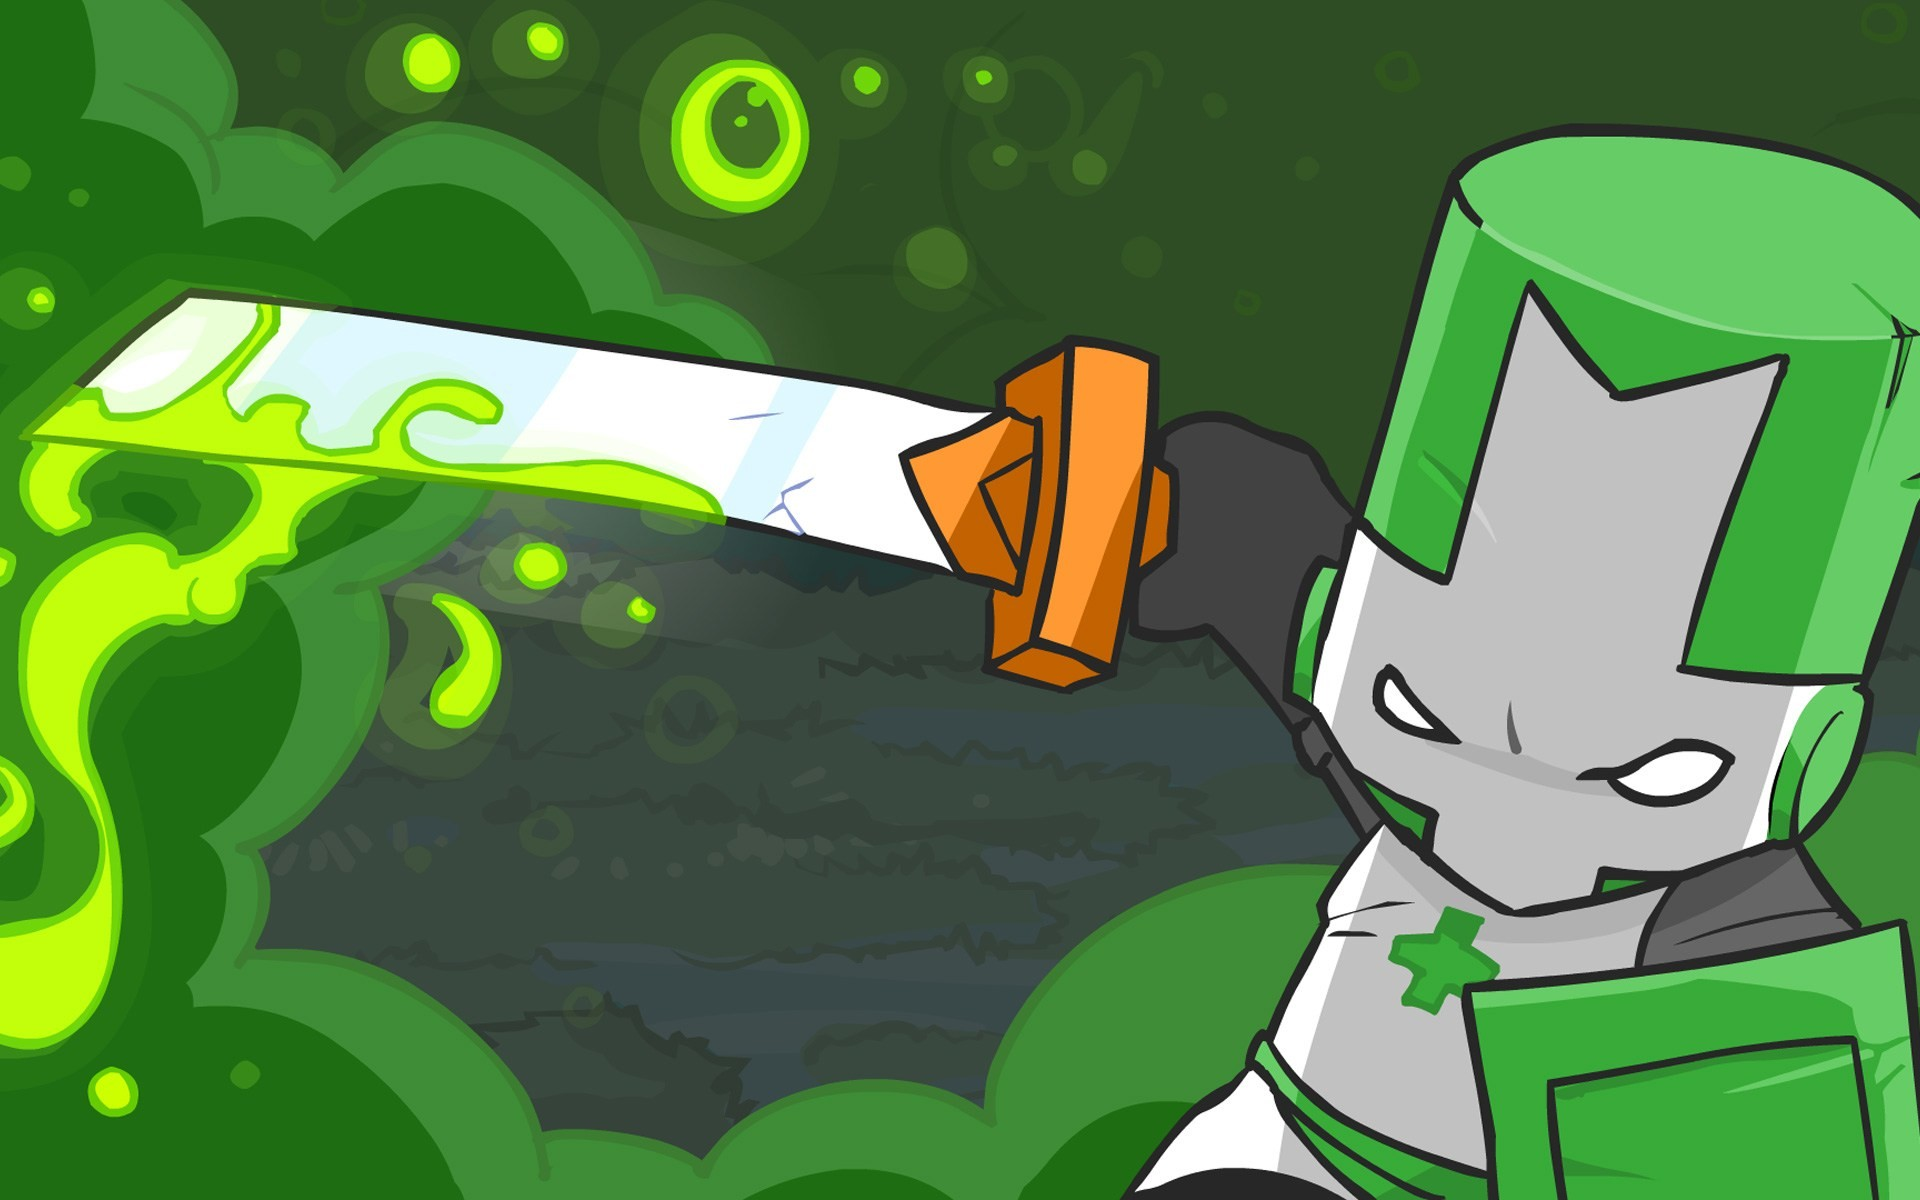 Castle Crashers Wallpaper In 1920×1200 Perfect Castle Crashers Wallpaper of  awesome full screen HD